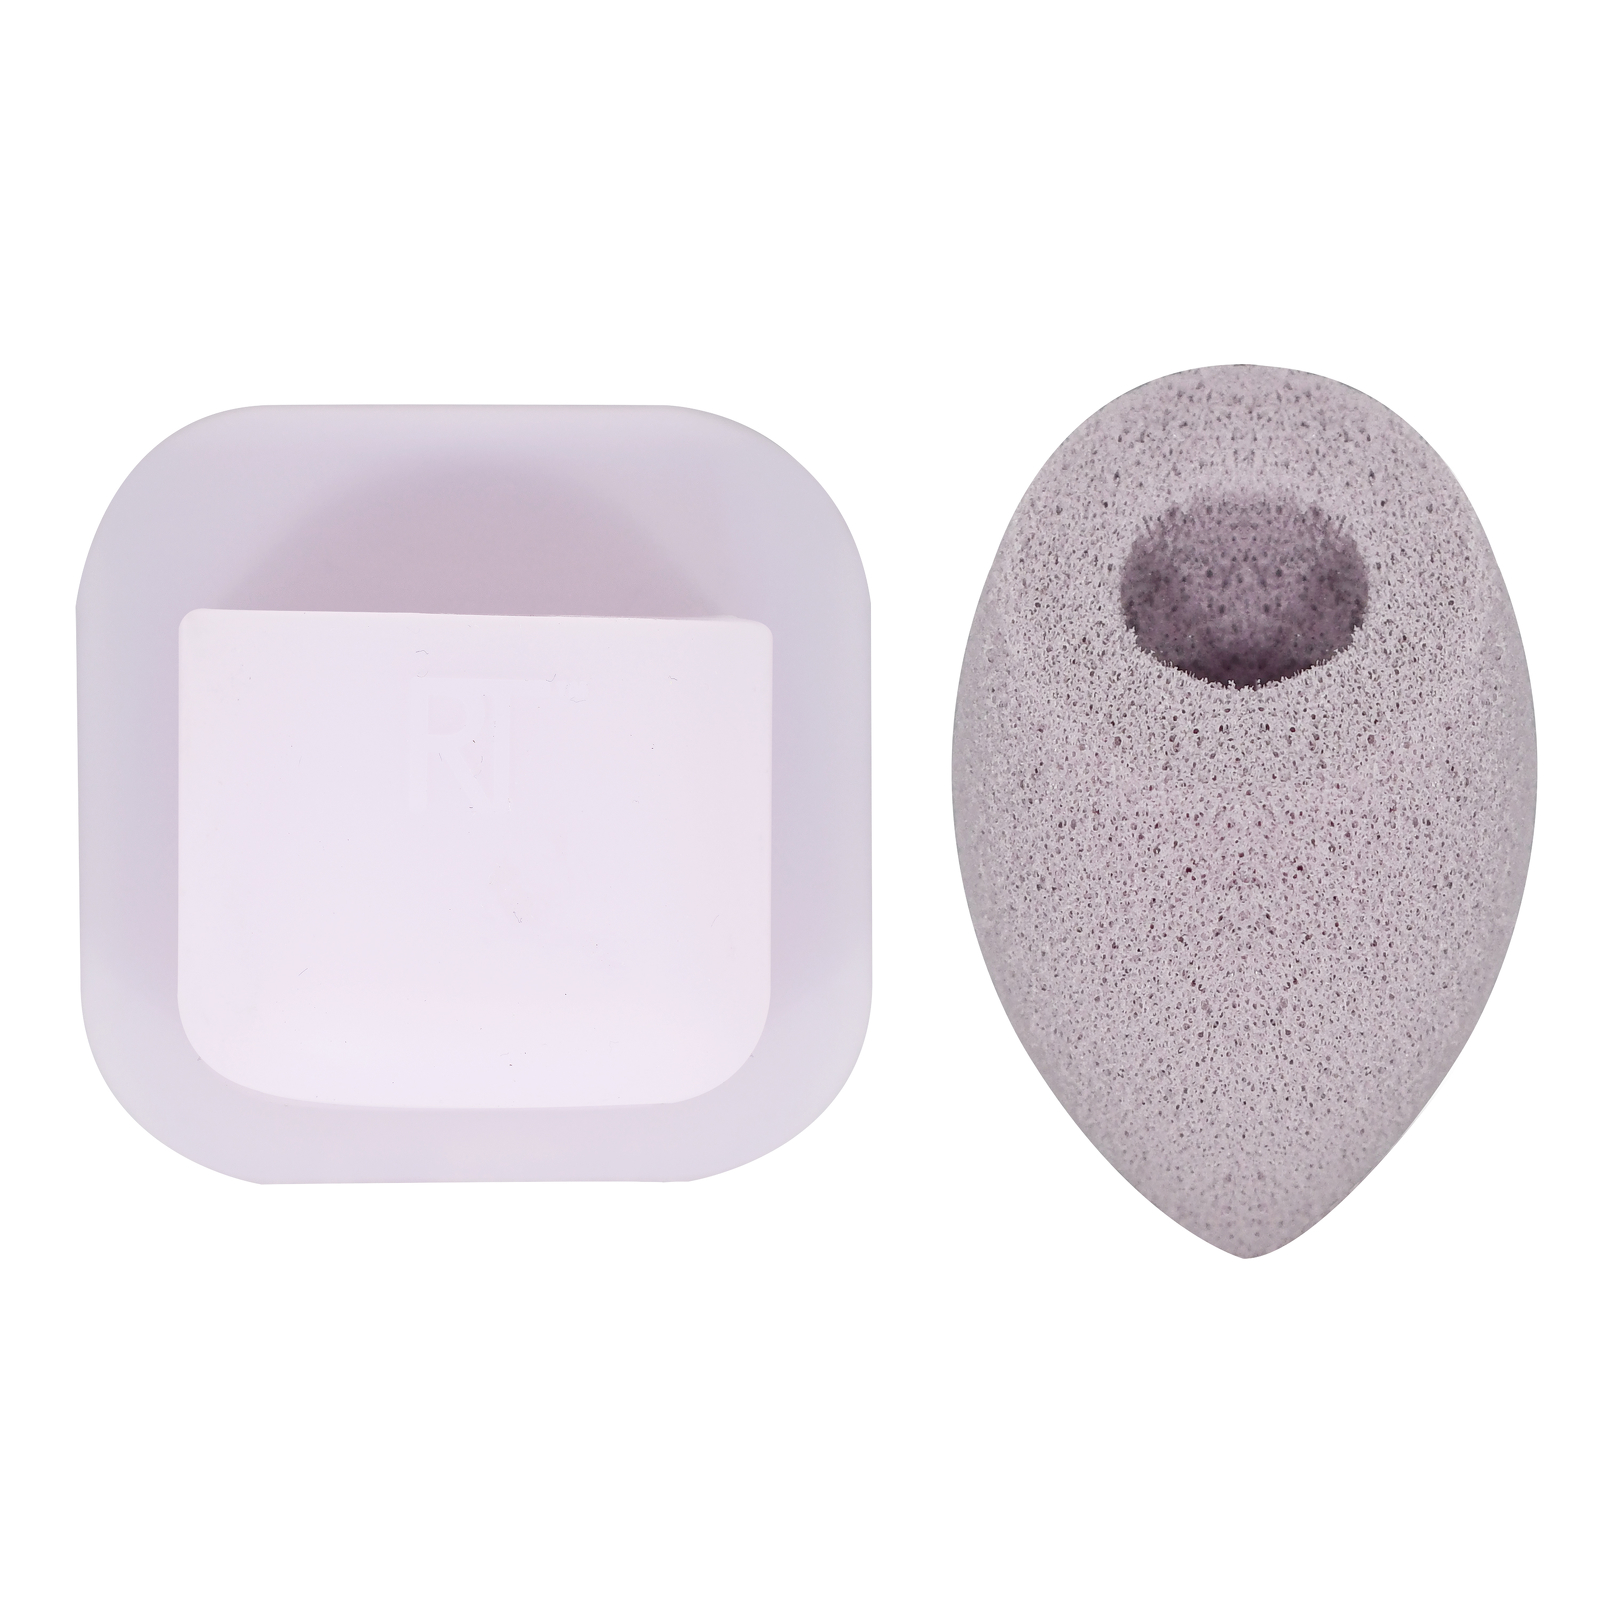 Real Techniques Sponges Miracle Cleansing Sponge + Stick & Store Sponge Keeper